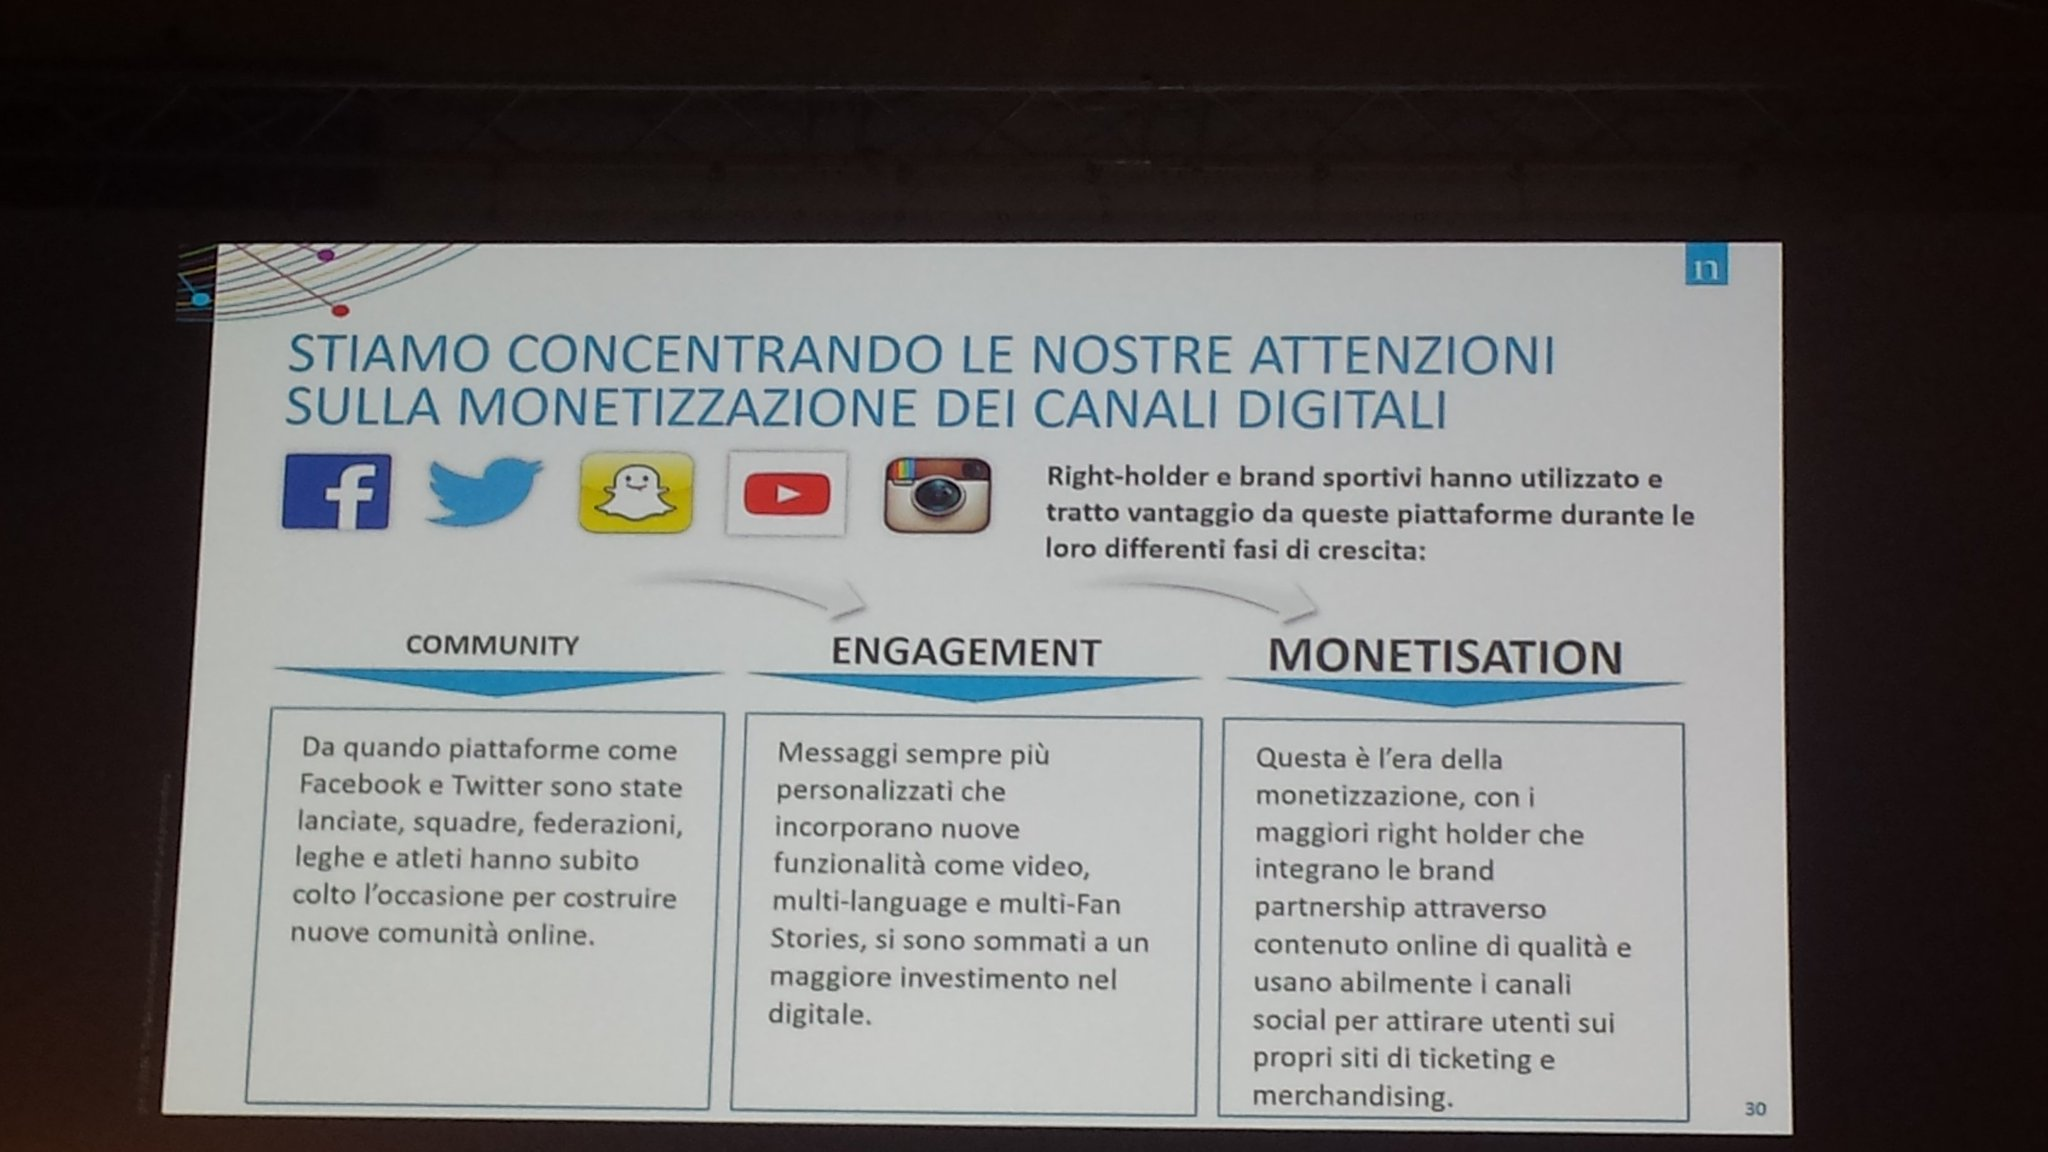 Brand sportivi e rights holder utilizzano i #socialmedia per costruire #communities, aumentare #engagement e #Monetization #ForumSport https://t.co/AfsF5sL13U